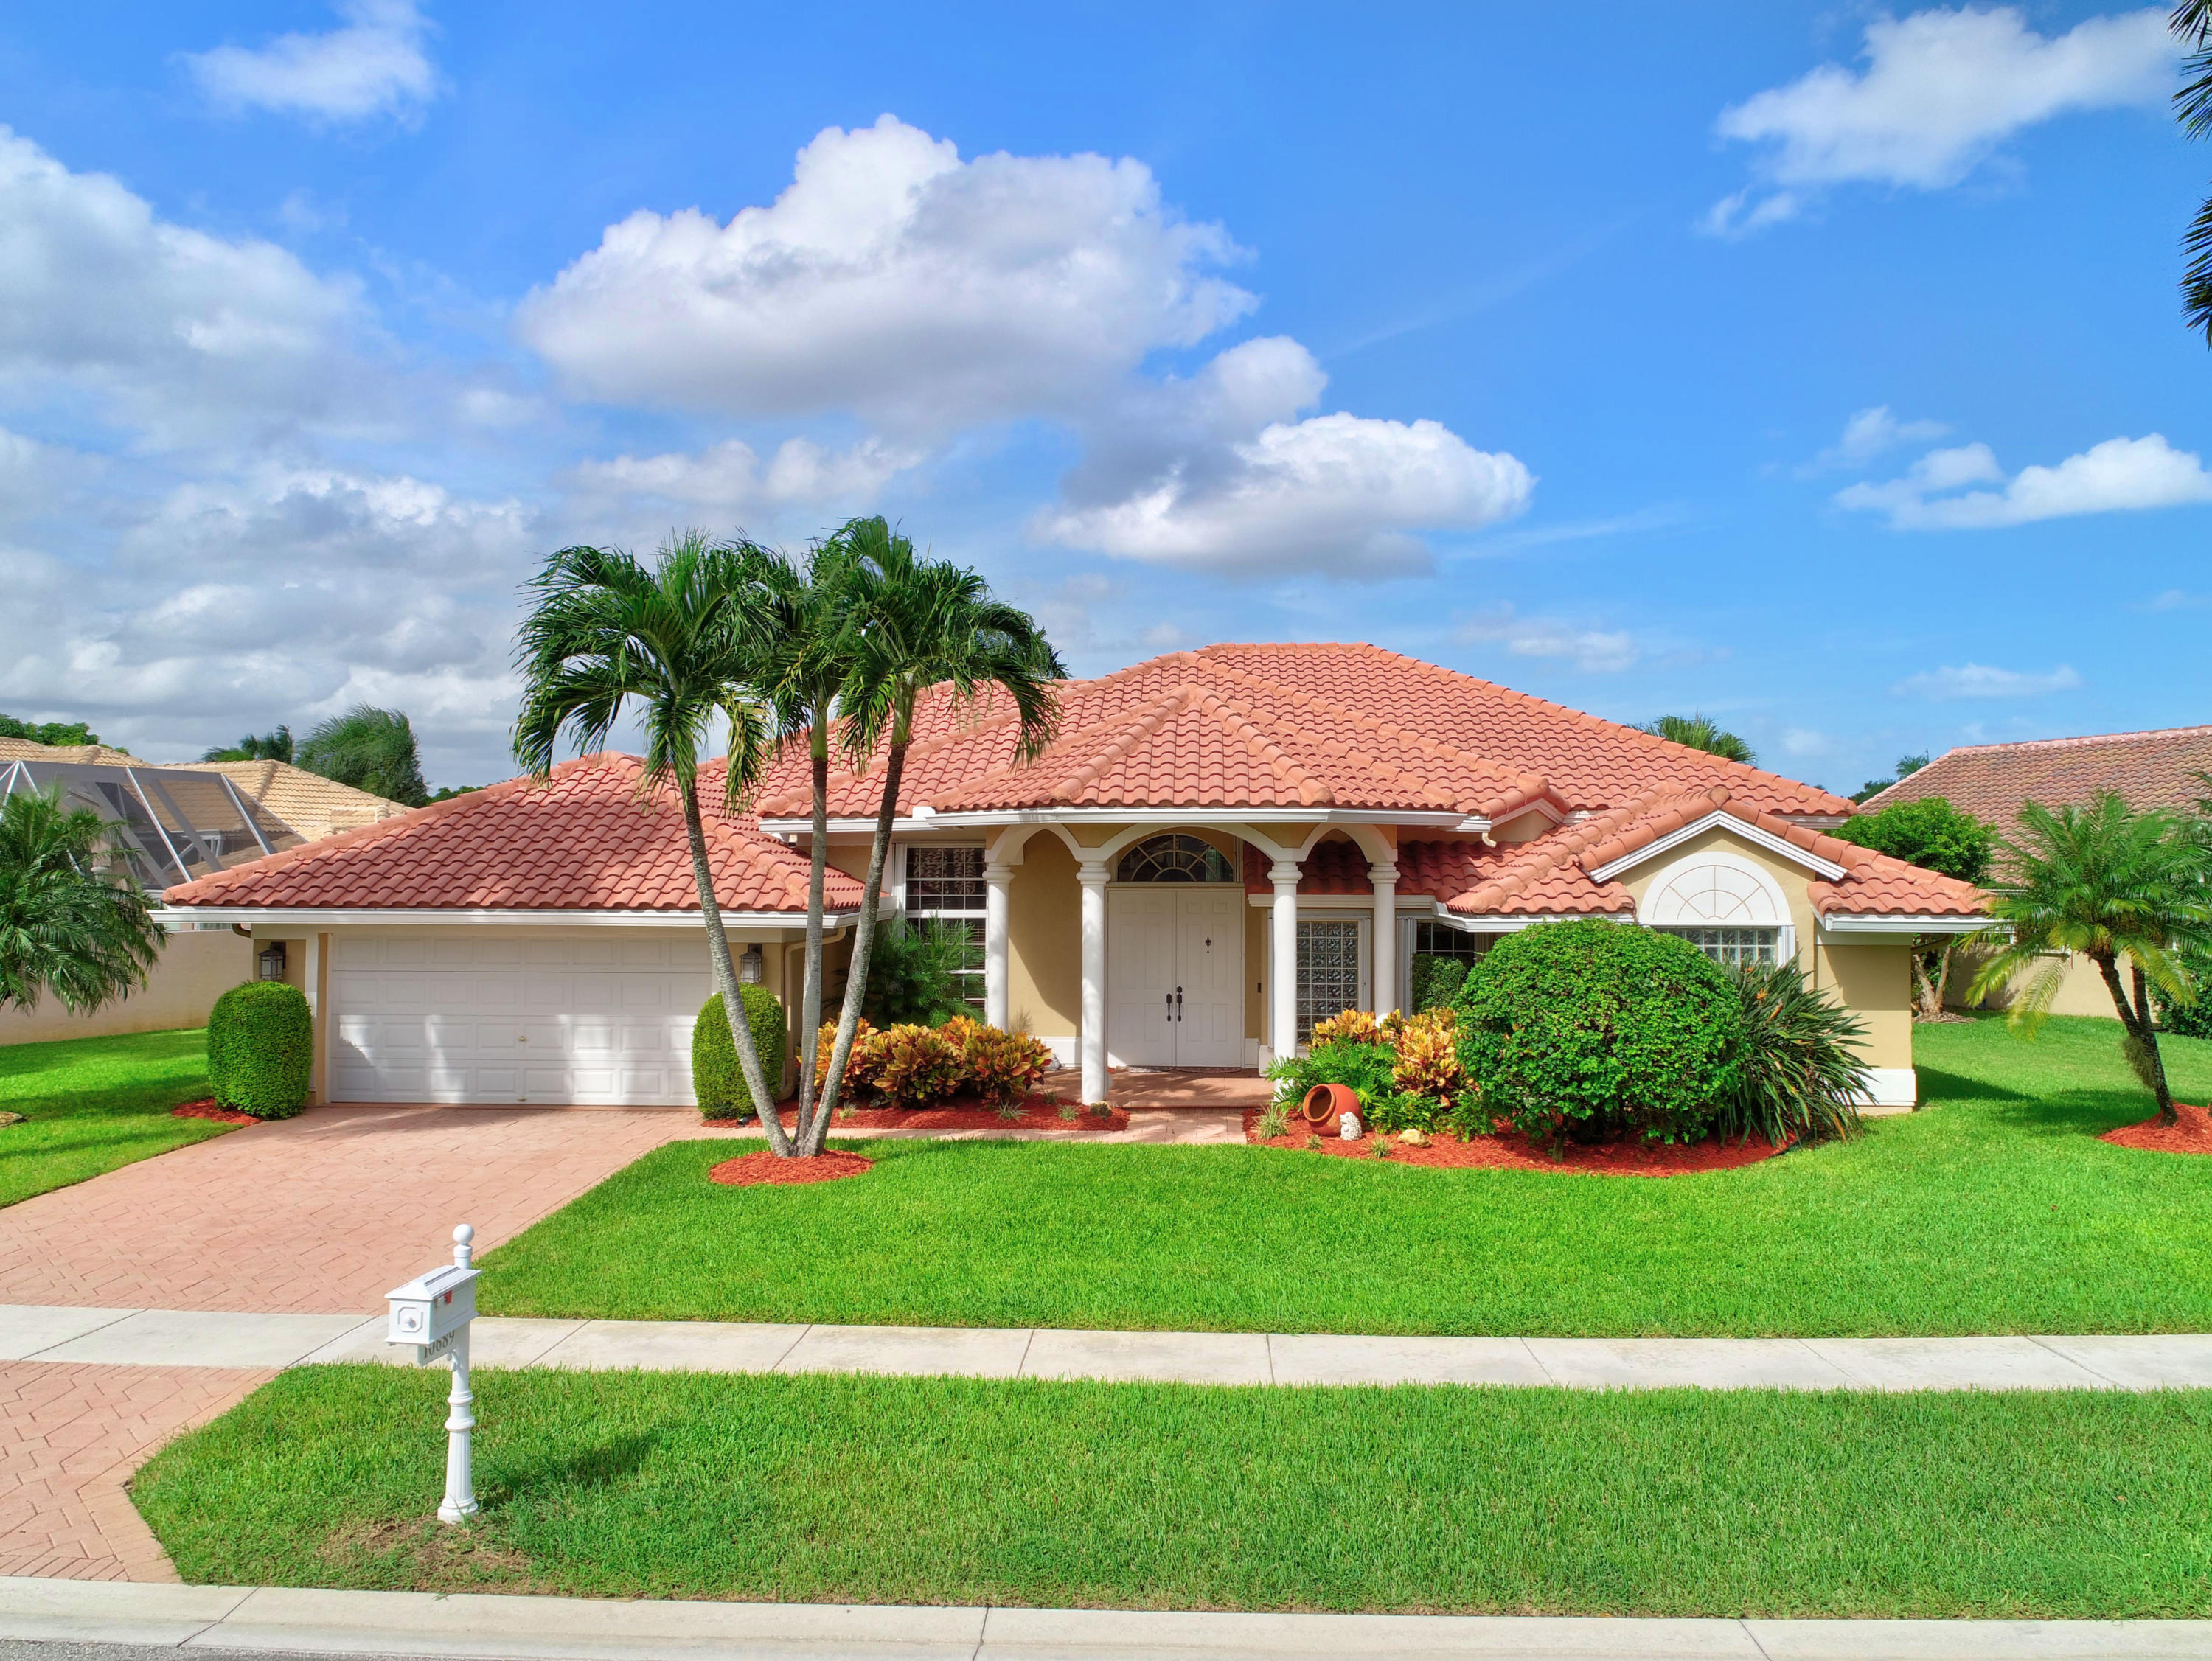 Photo of 10689 Maple Chase Drive, Boca Raton, FL 33498